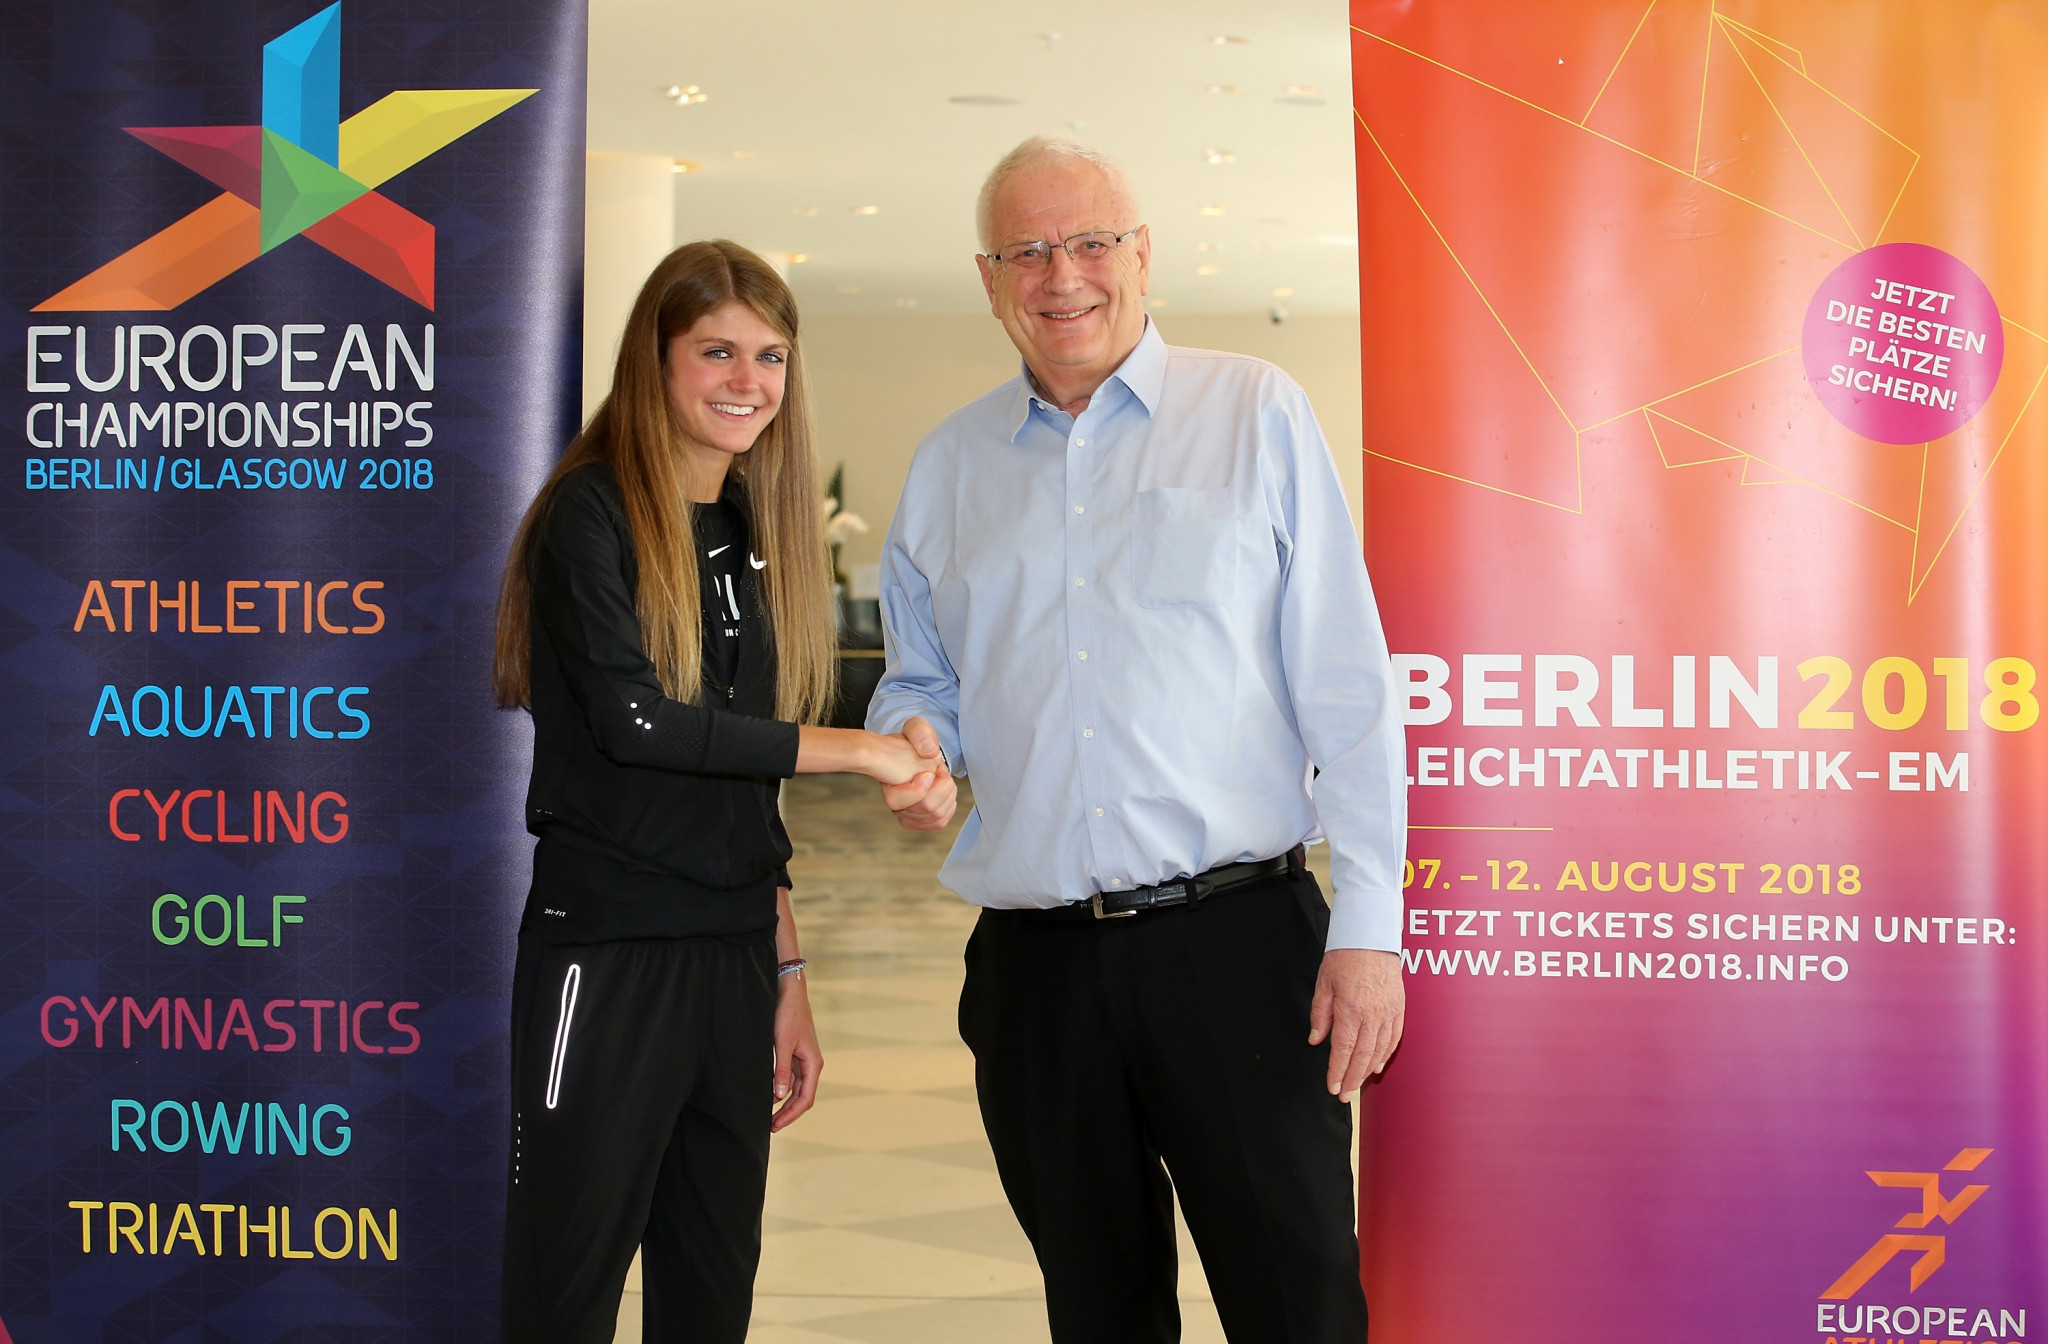 Nike named official partner of Berlin 2018 European Athletics Championships